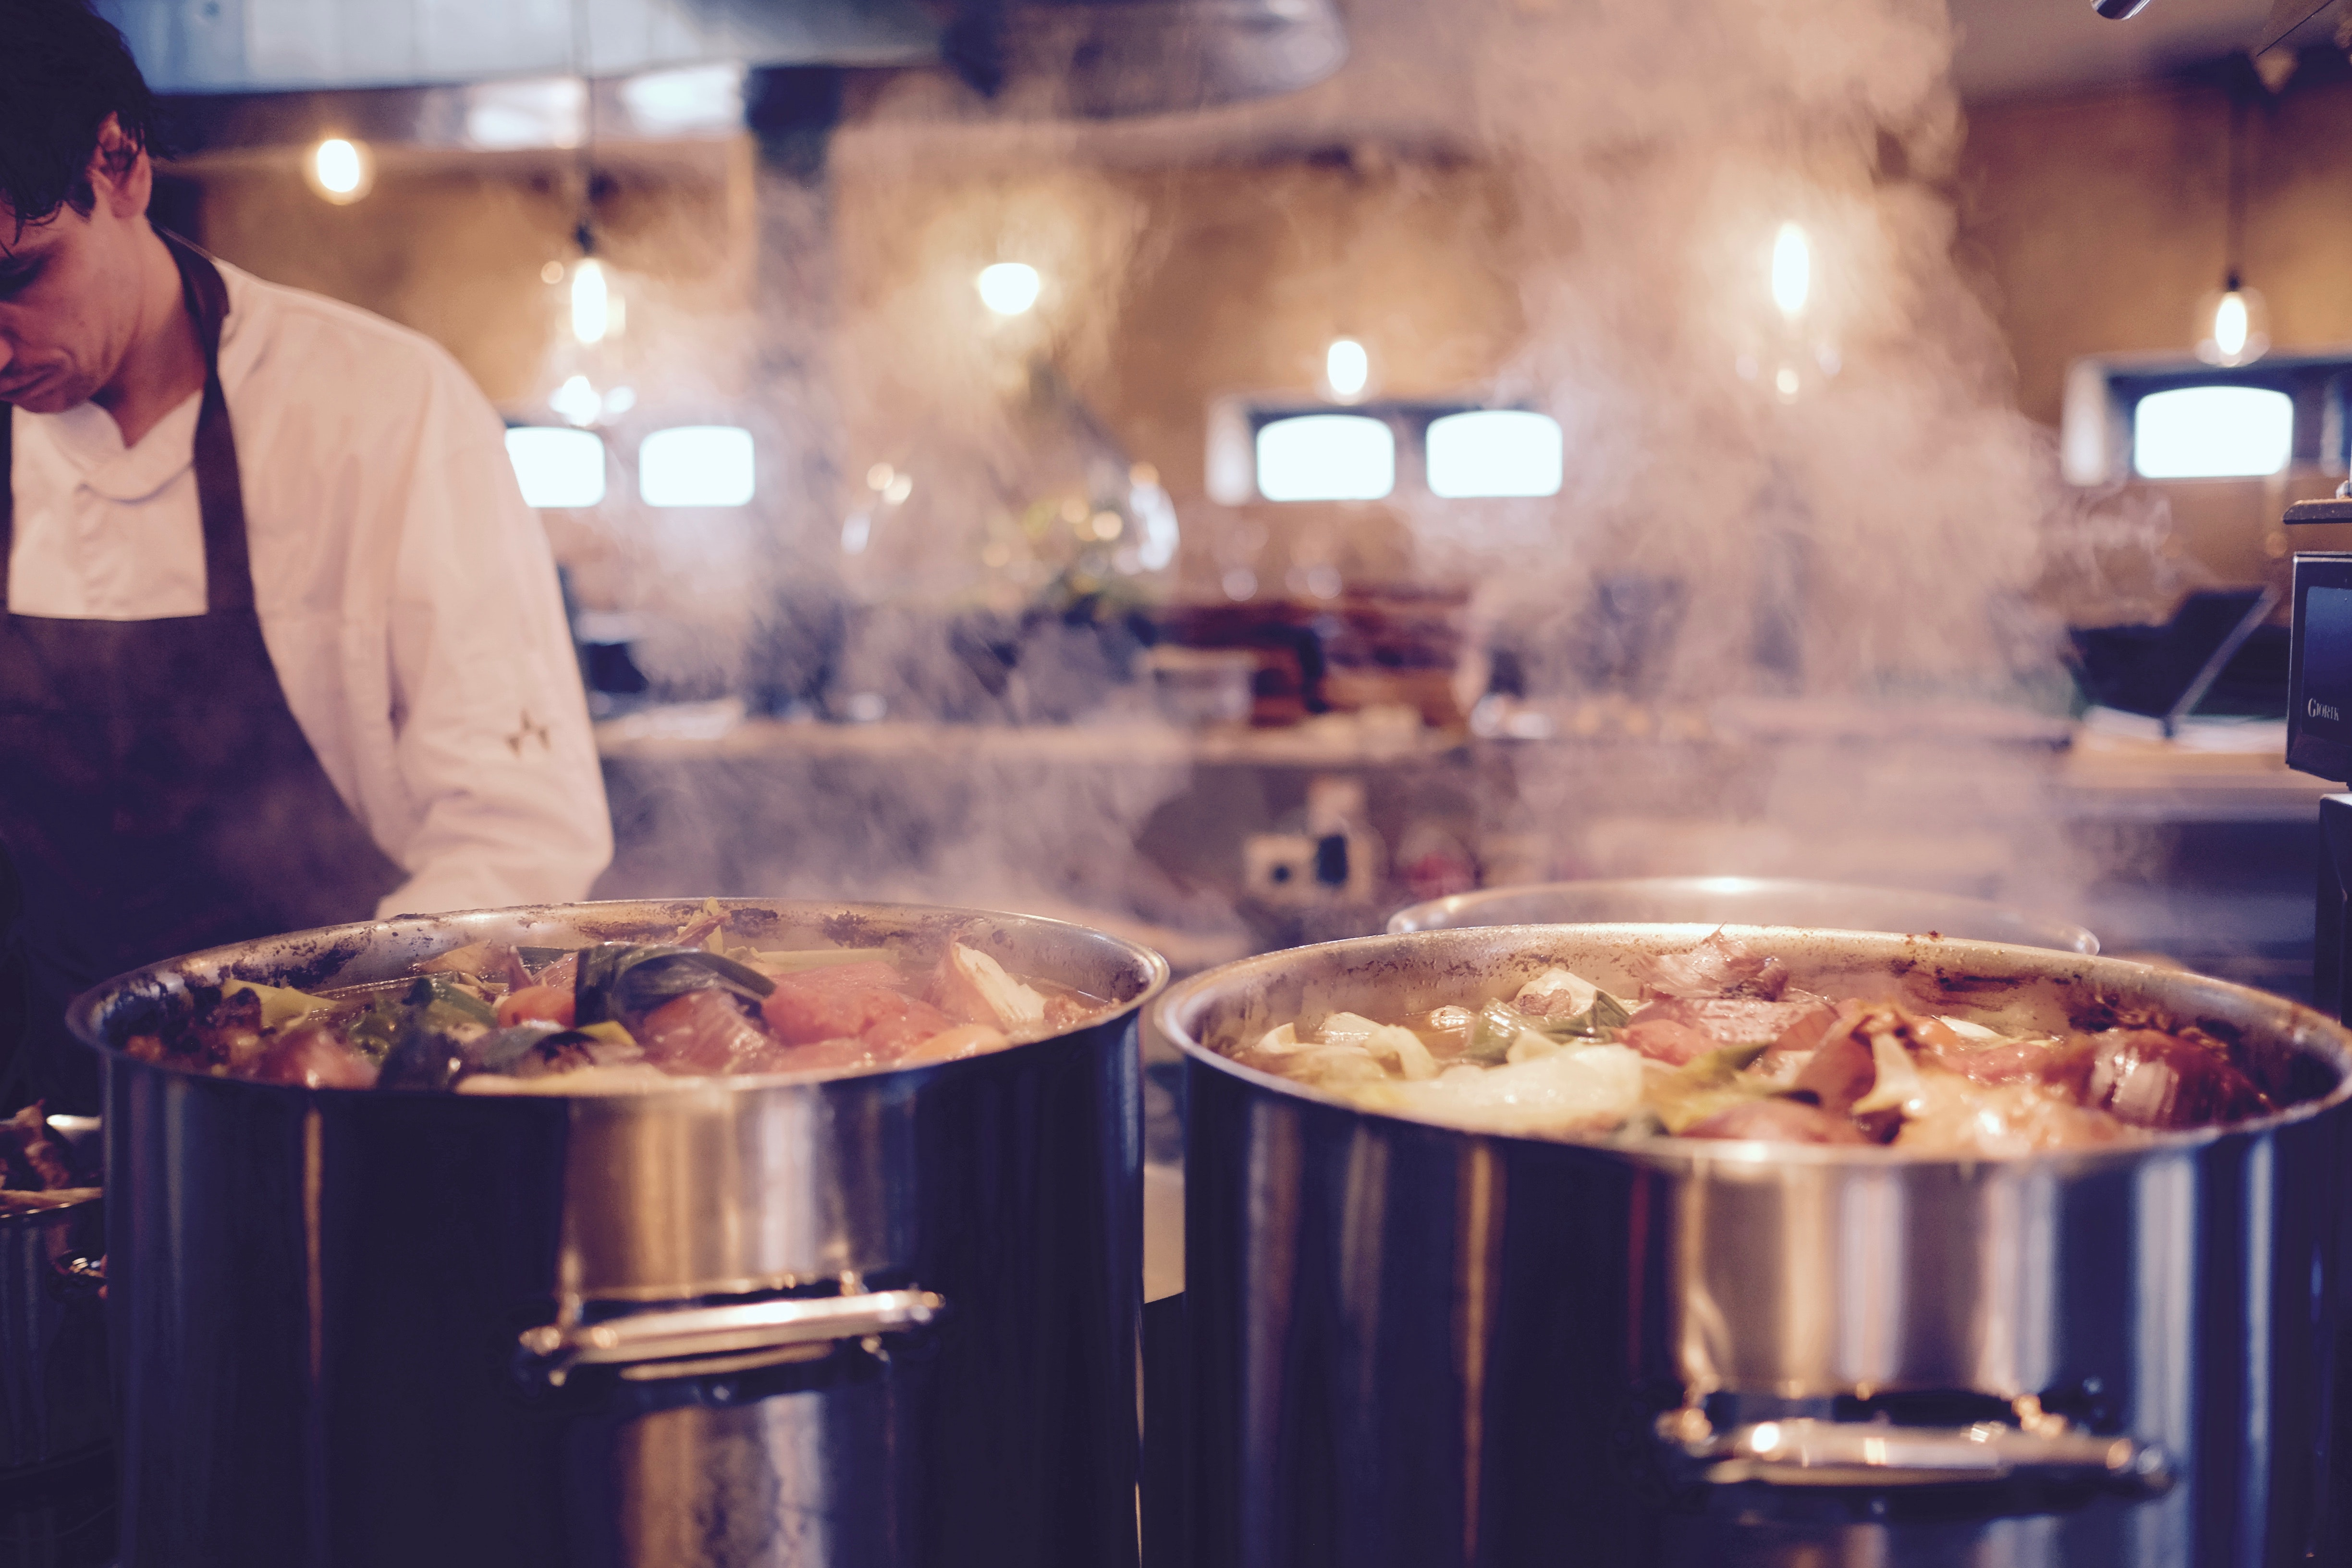 What do I need to start a commercial kitchen?